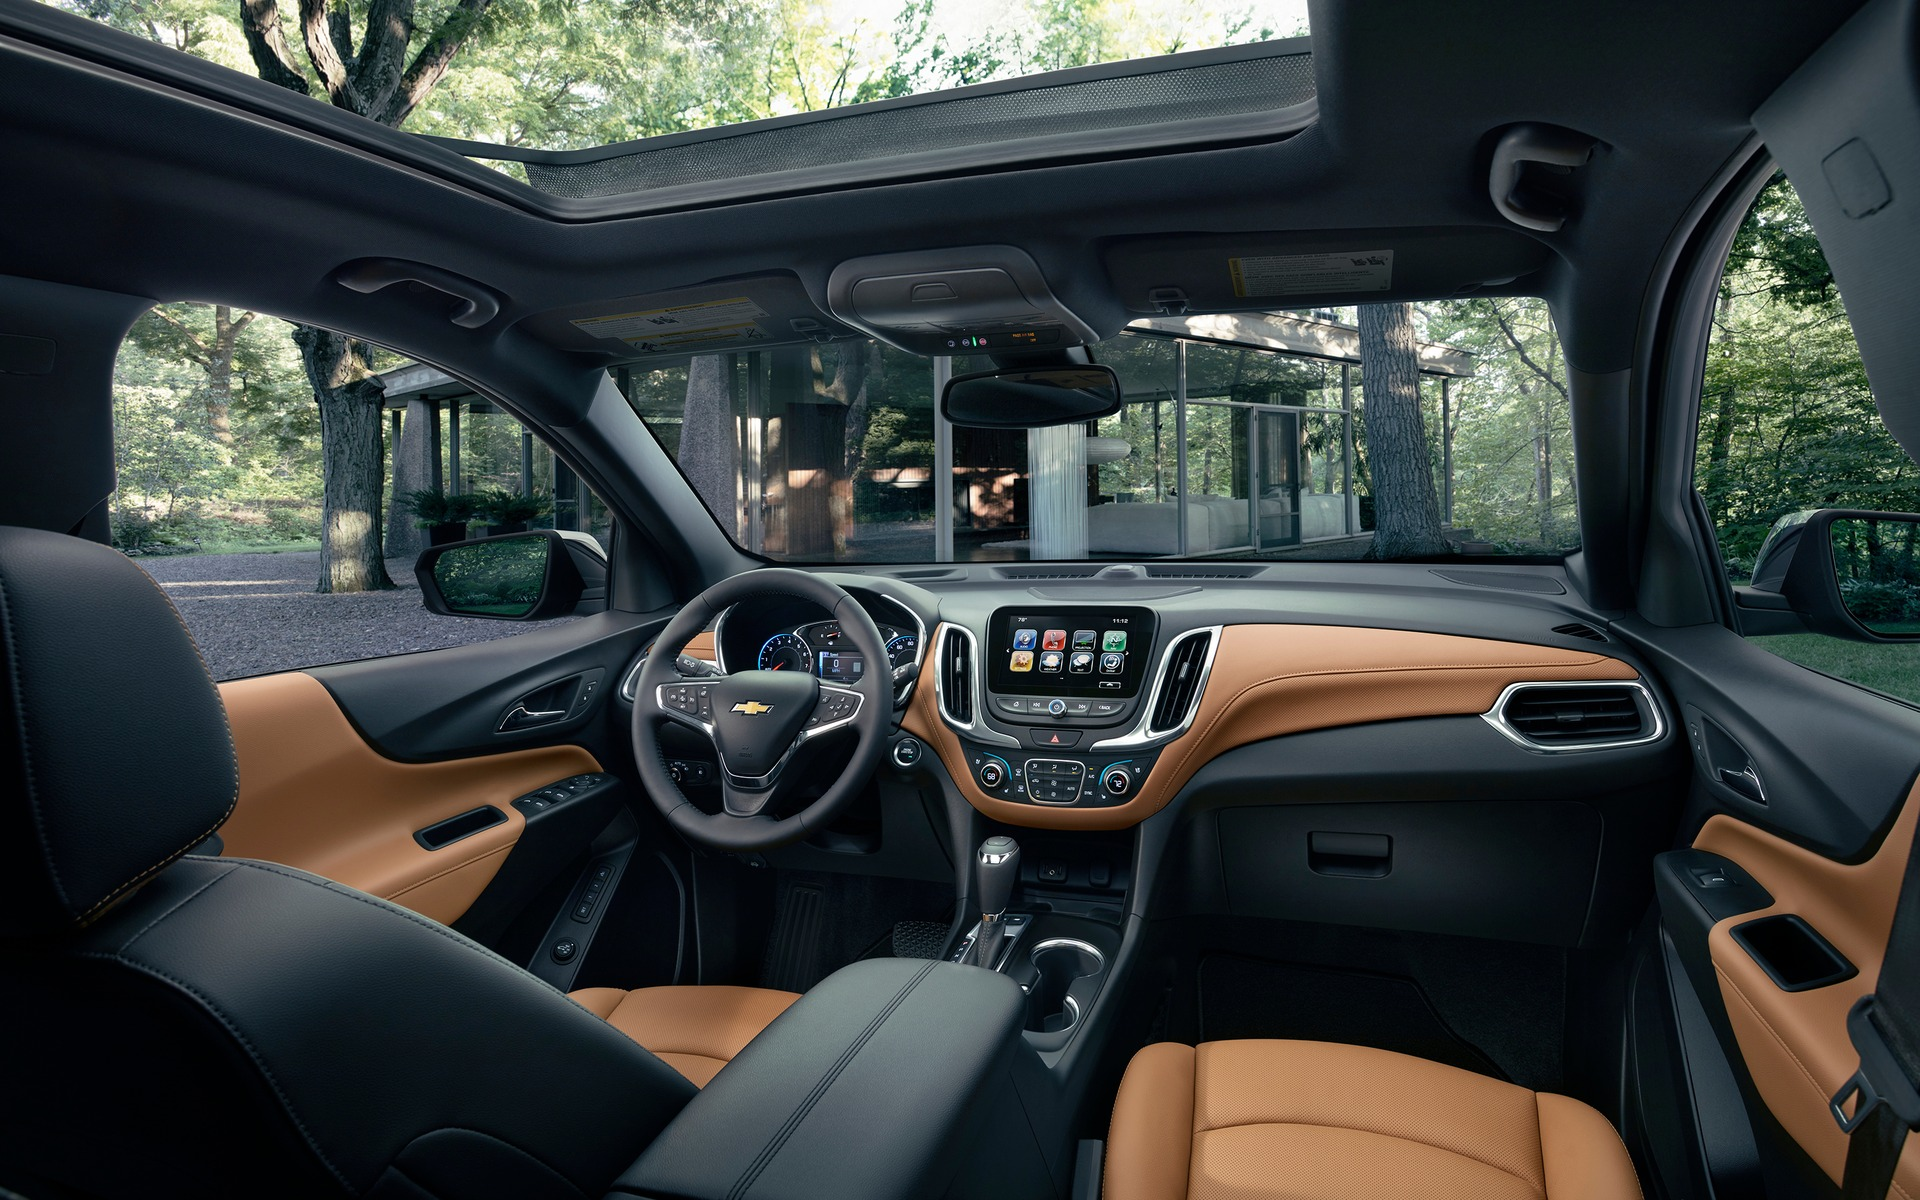 The 10 Best Car Interiors Of 2018 According To Wardsauto The Car Guide